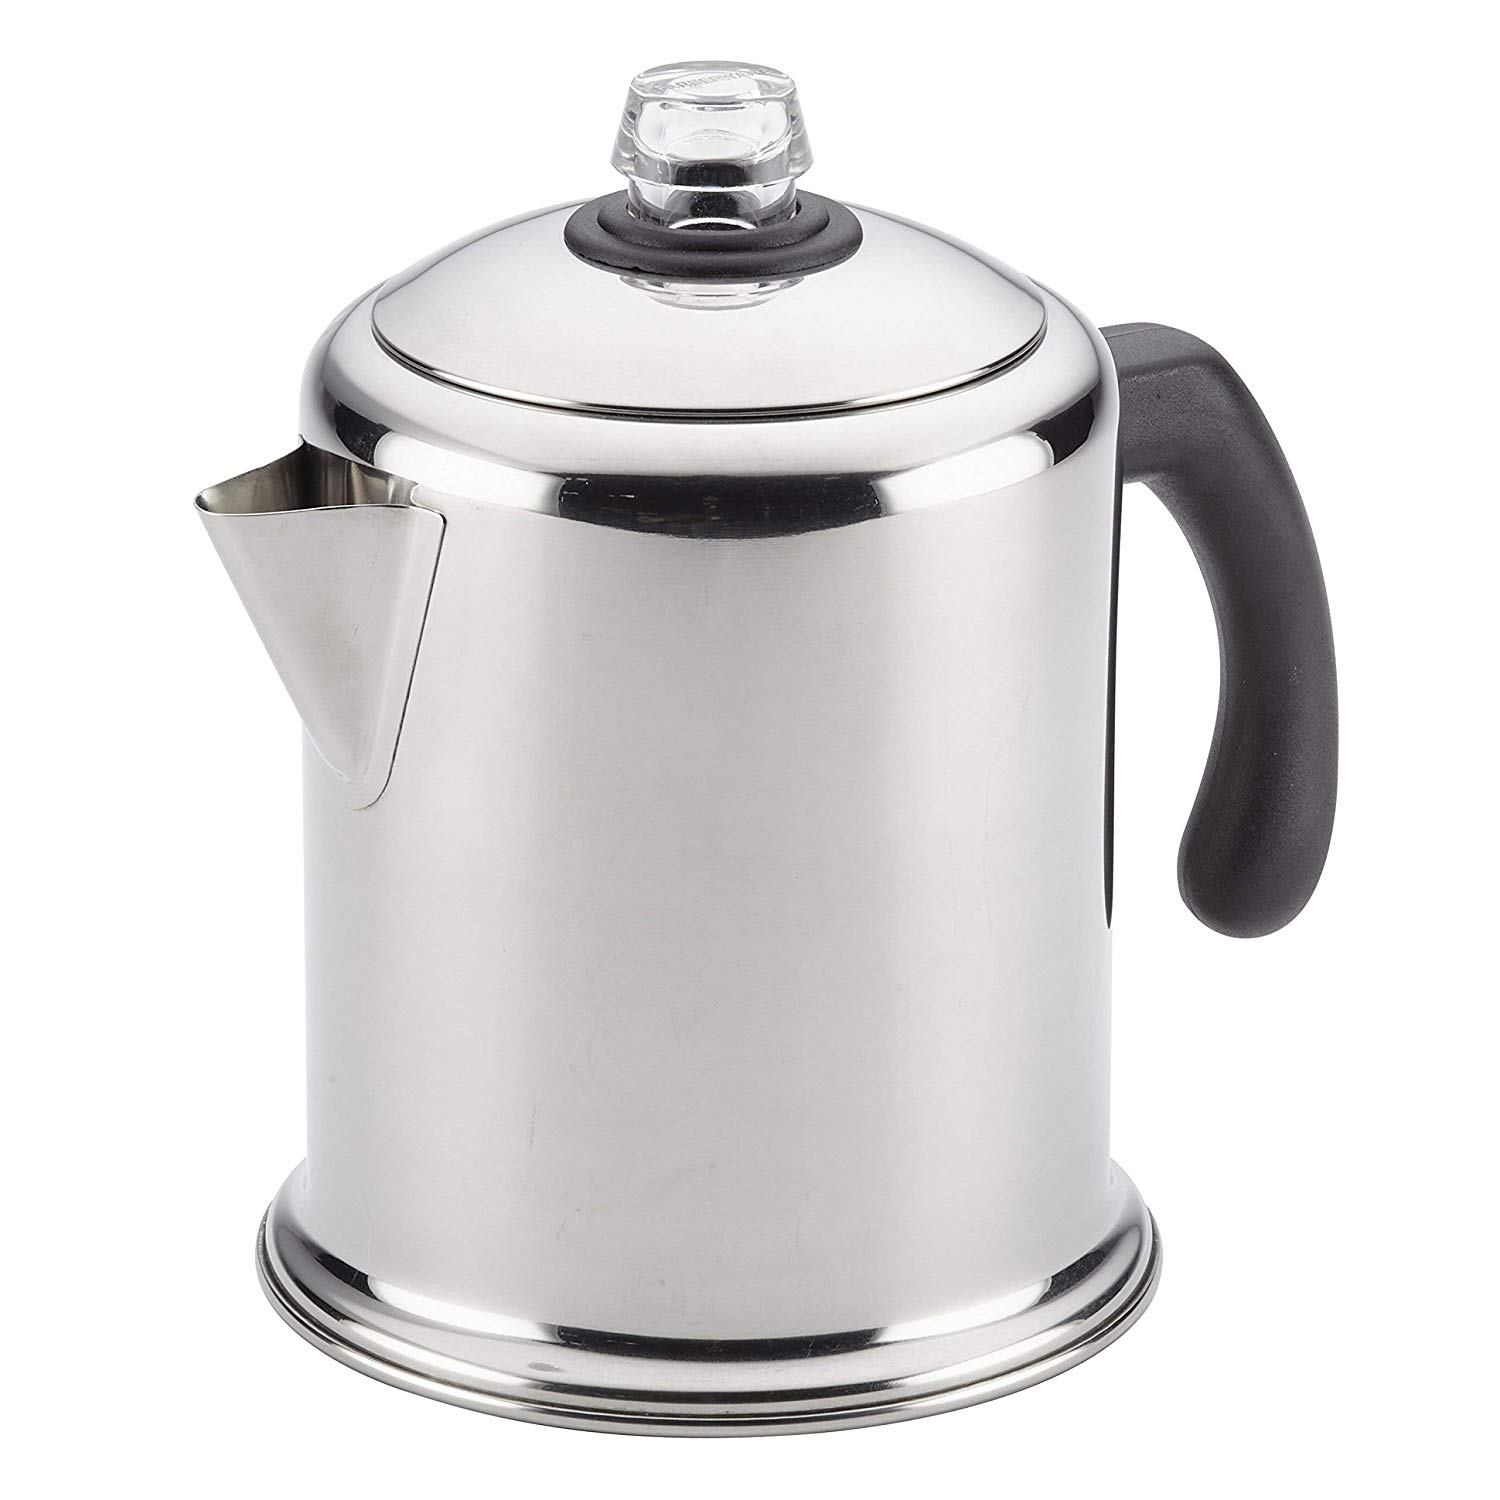 Farberware Classic Teakettles Yosemite, 12-Cup Stainless Steel Percolator camping coffee maker